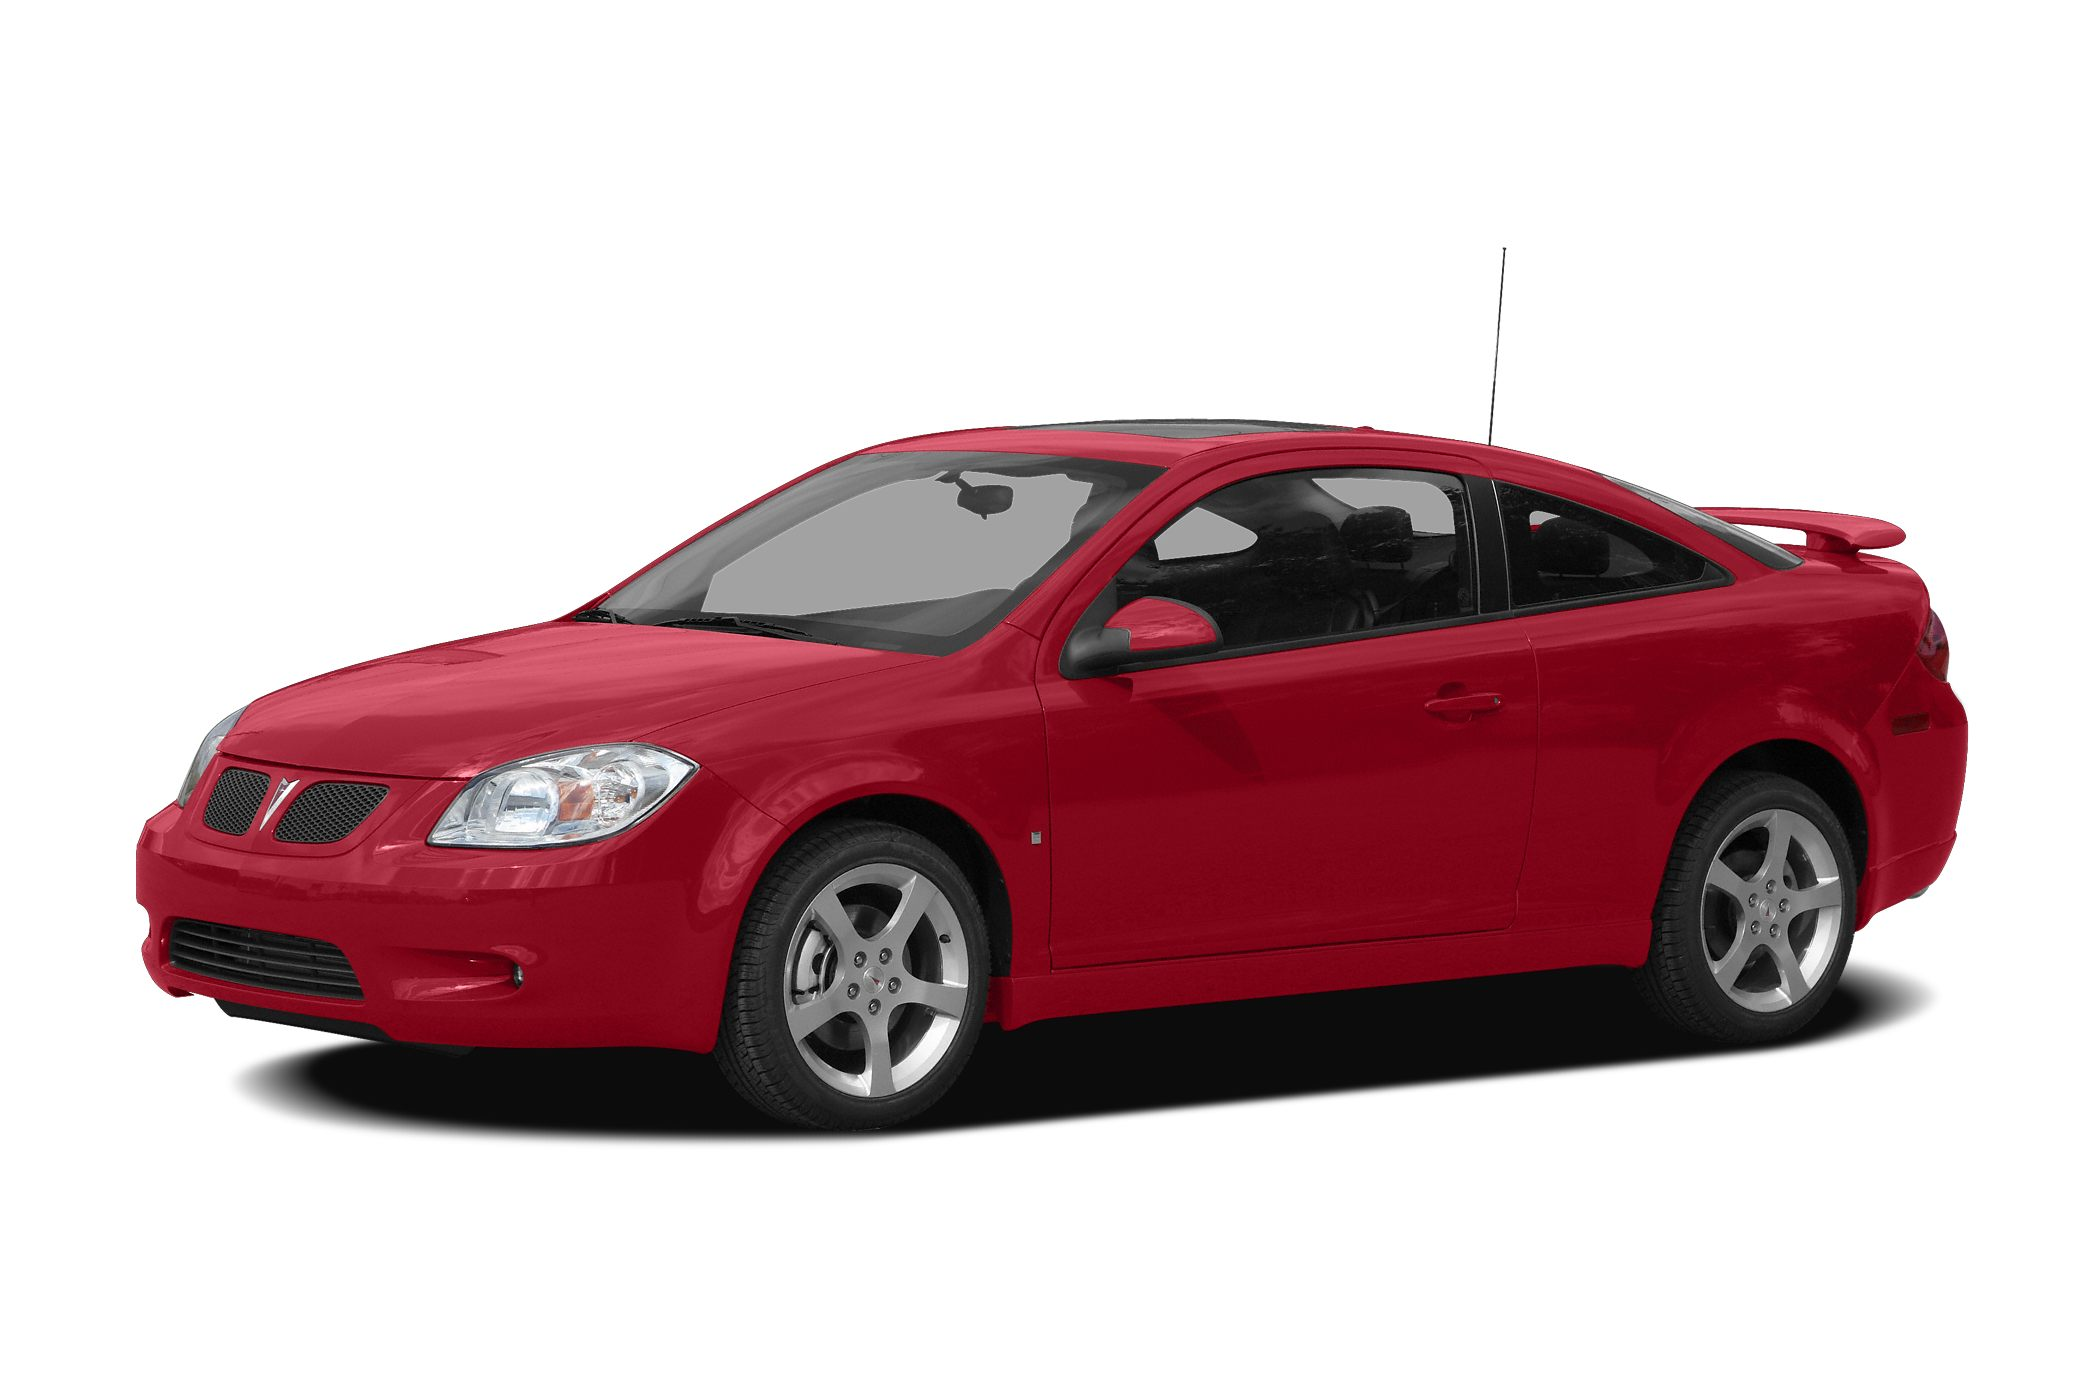 2009 Pontiac G5 GT Color Red Stock ZT271533 VIN 1G2AT18H09721533